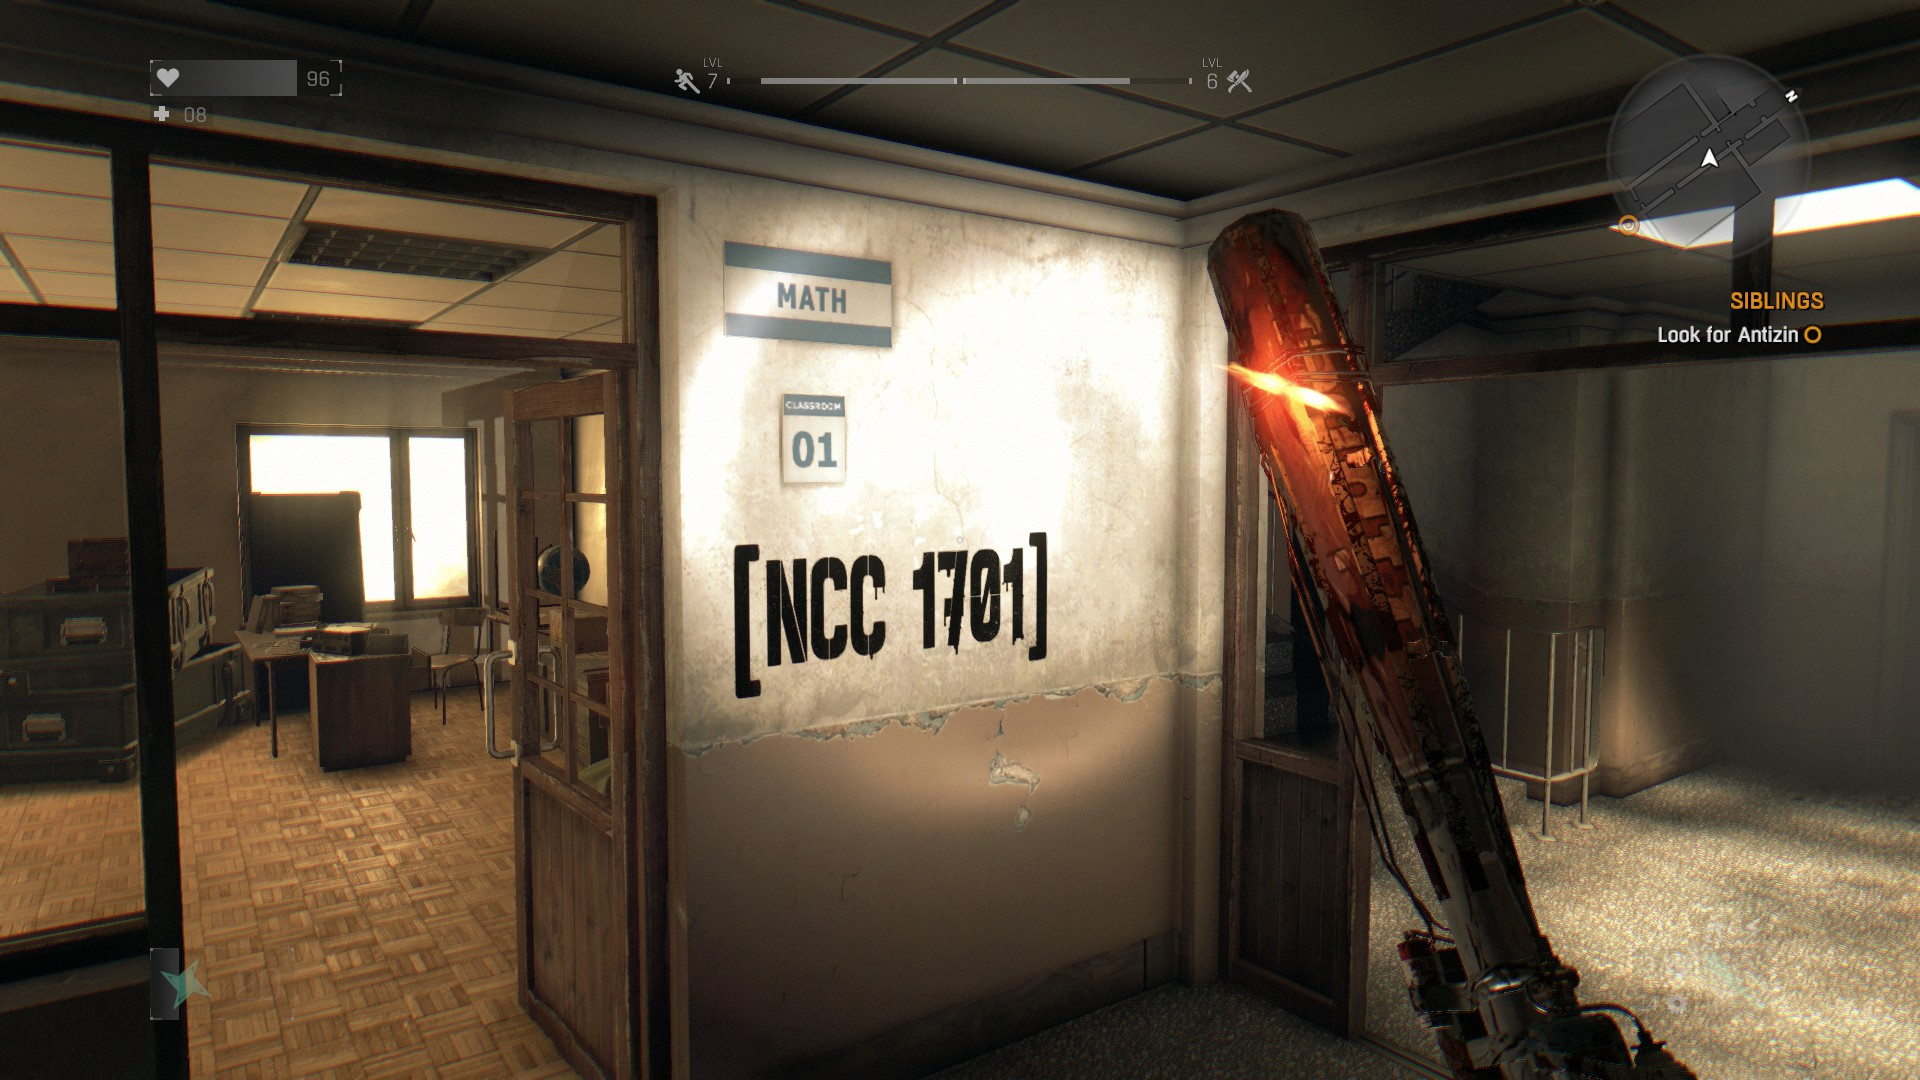 Easter eggs dying light wiki fandom powered by wikia malvernweather Choice Image